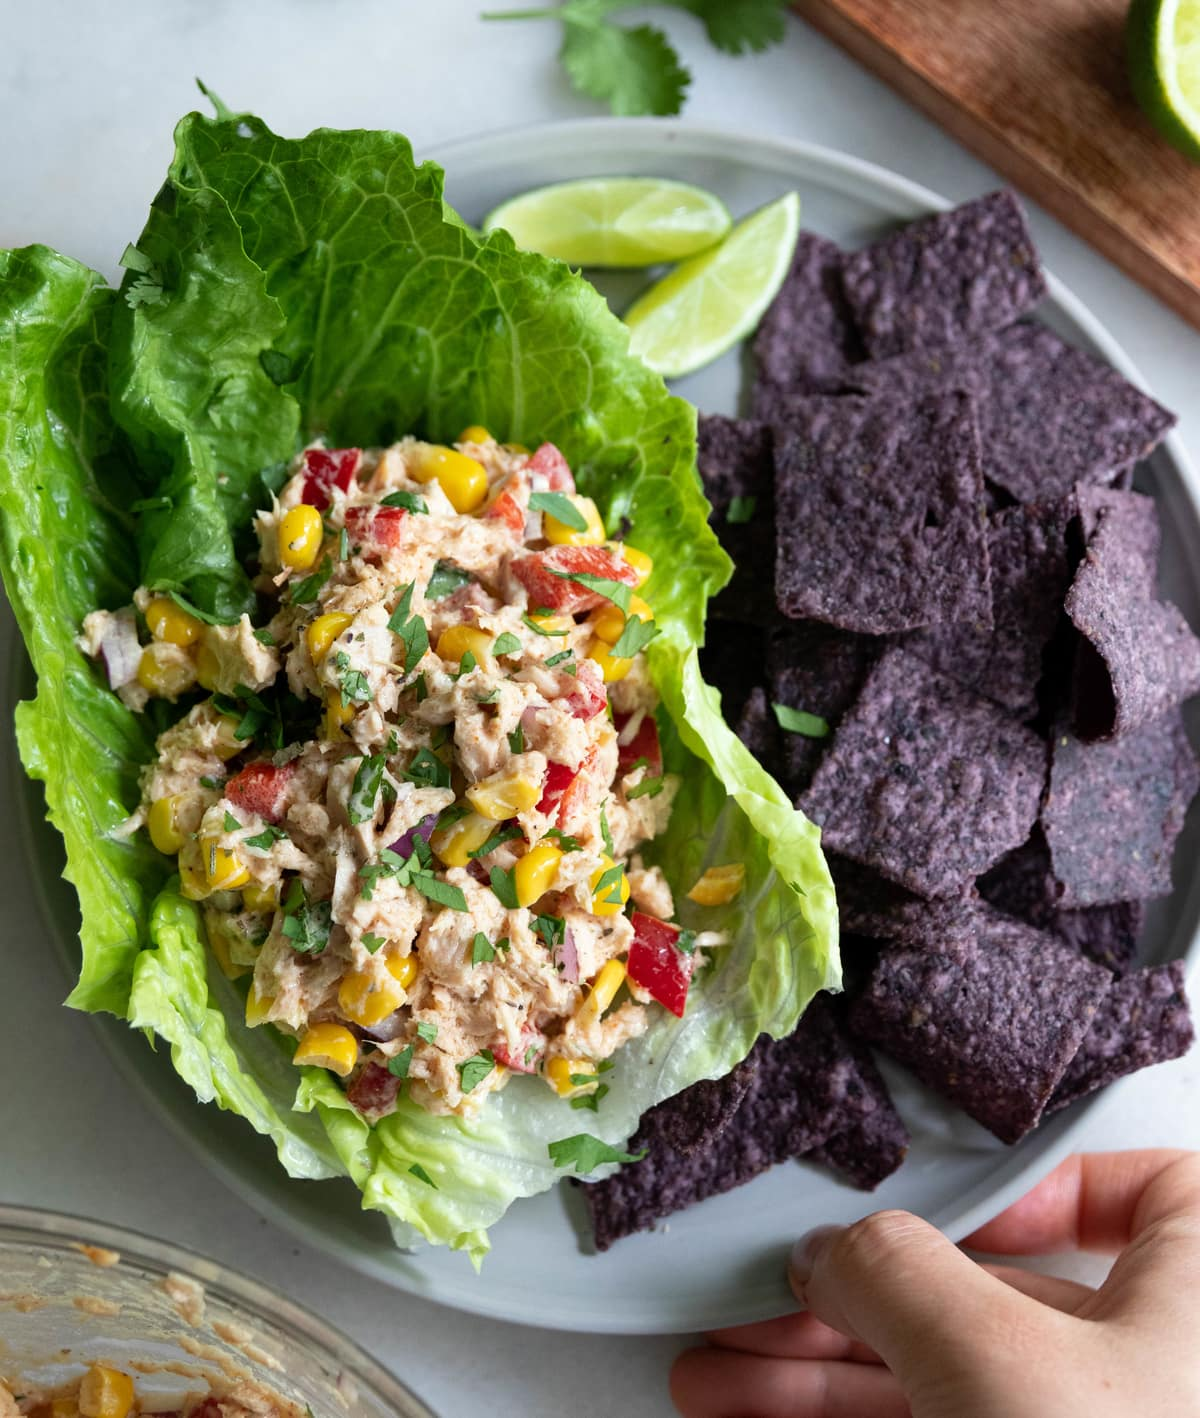 A hand holding a gray plate filled with Mexican tuna salad in lettuce boats and blue corn tortilla chips.